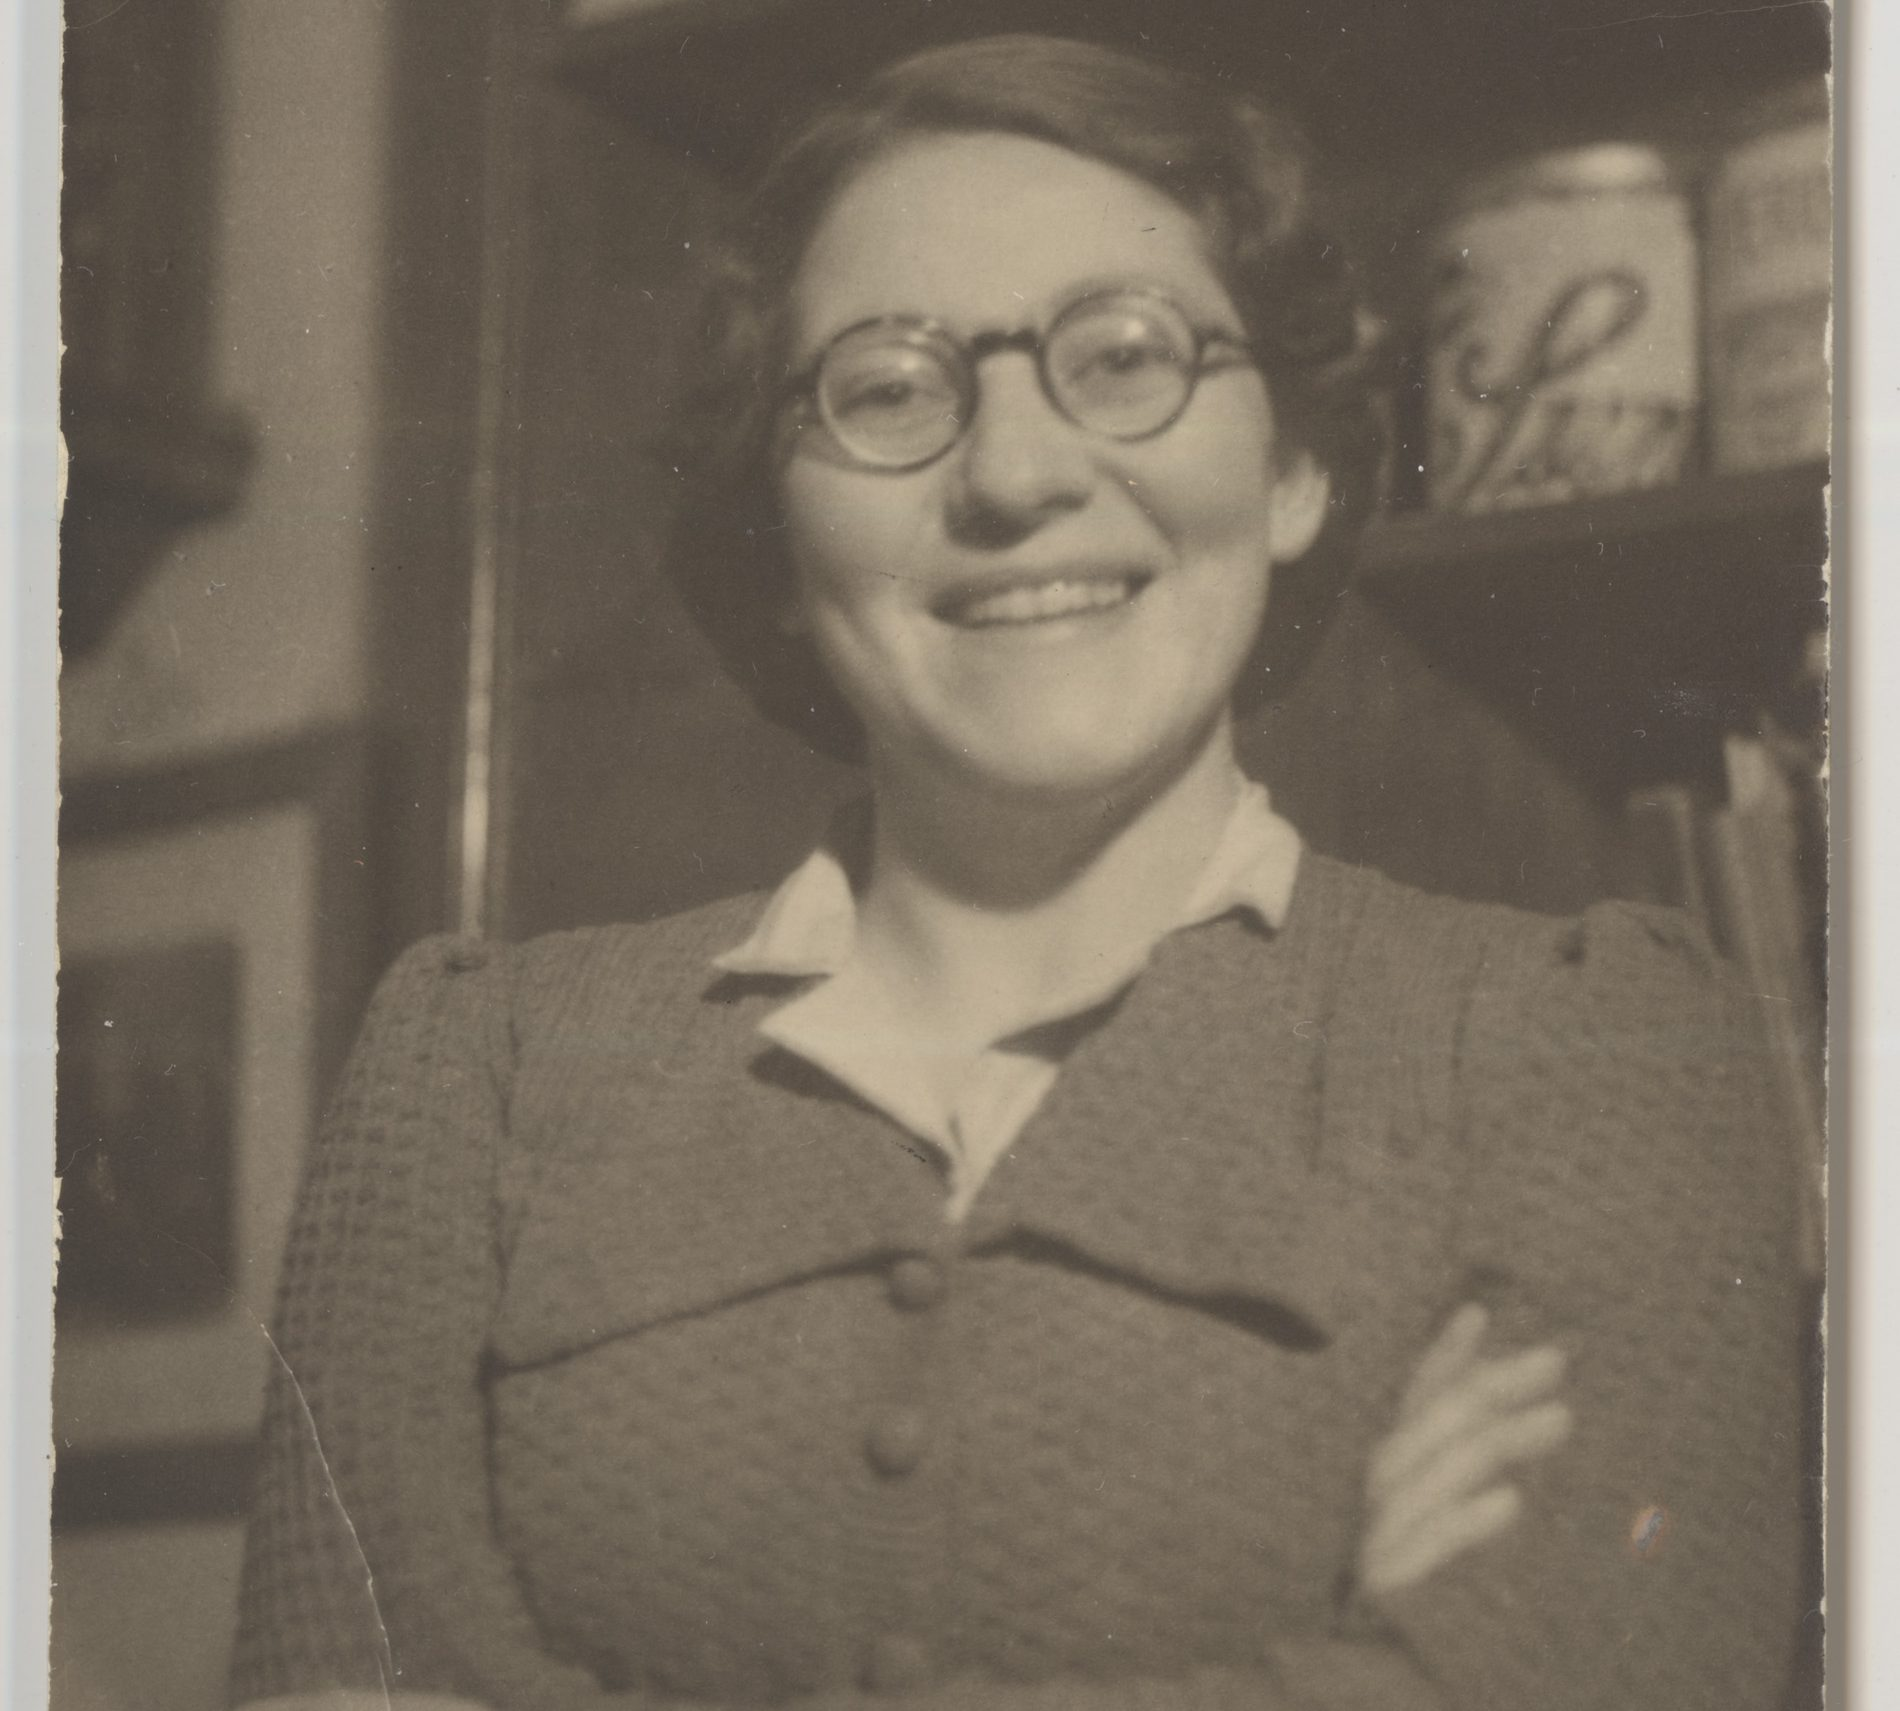 Martha Blum working in a pharmacy in 1933.